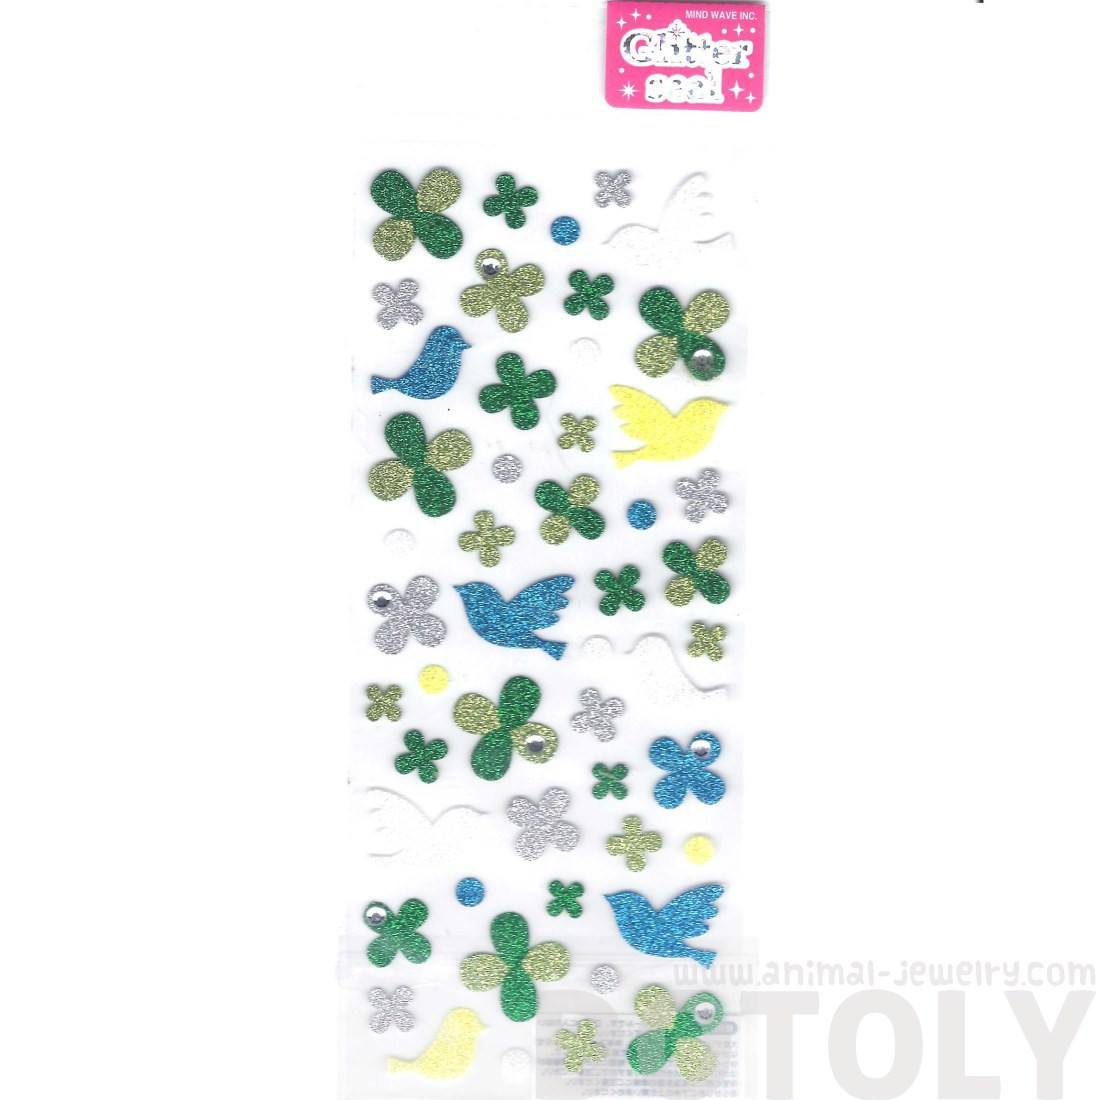 Doves Birds and Four Leaf Clovers Shaped Shimmer Decorative Stickers